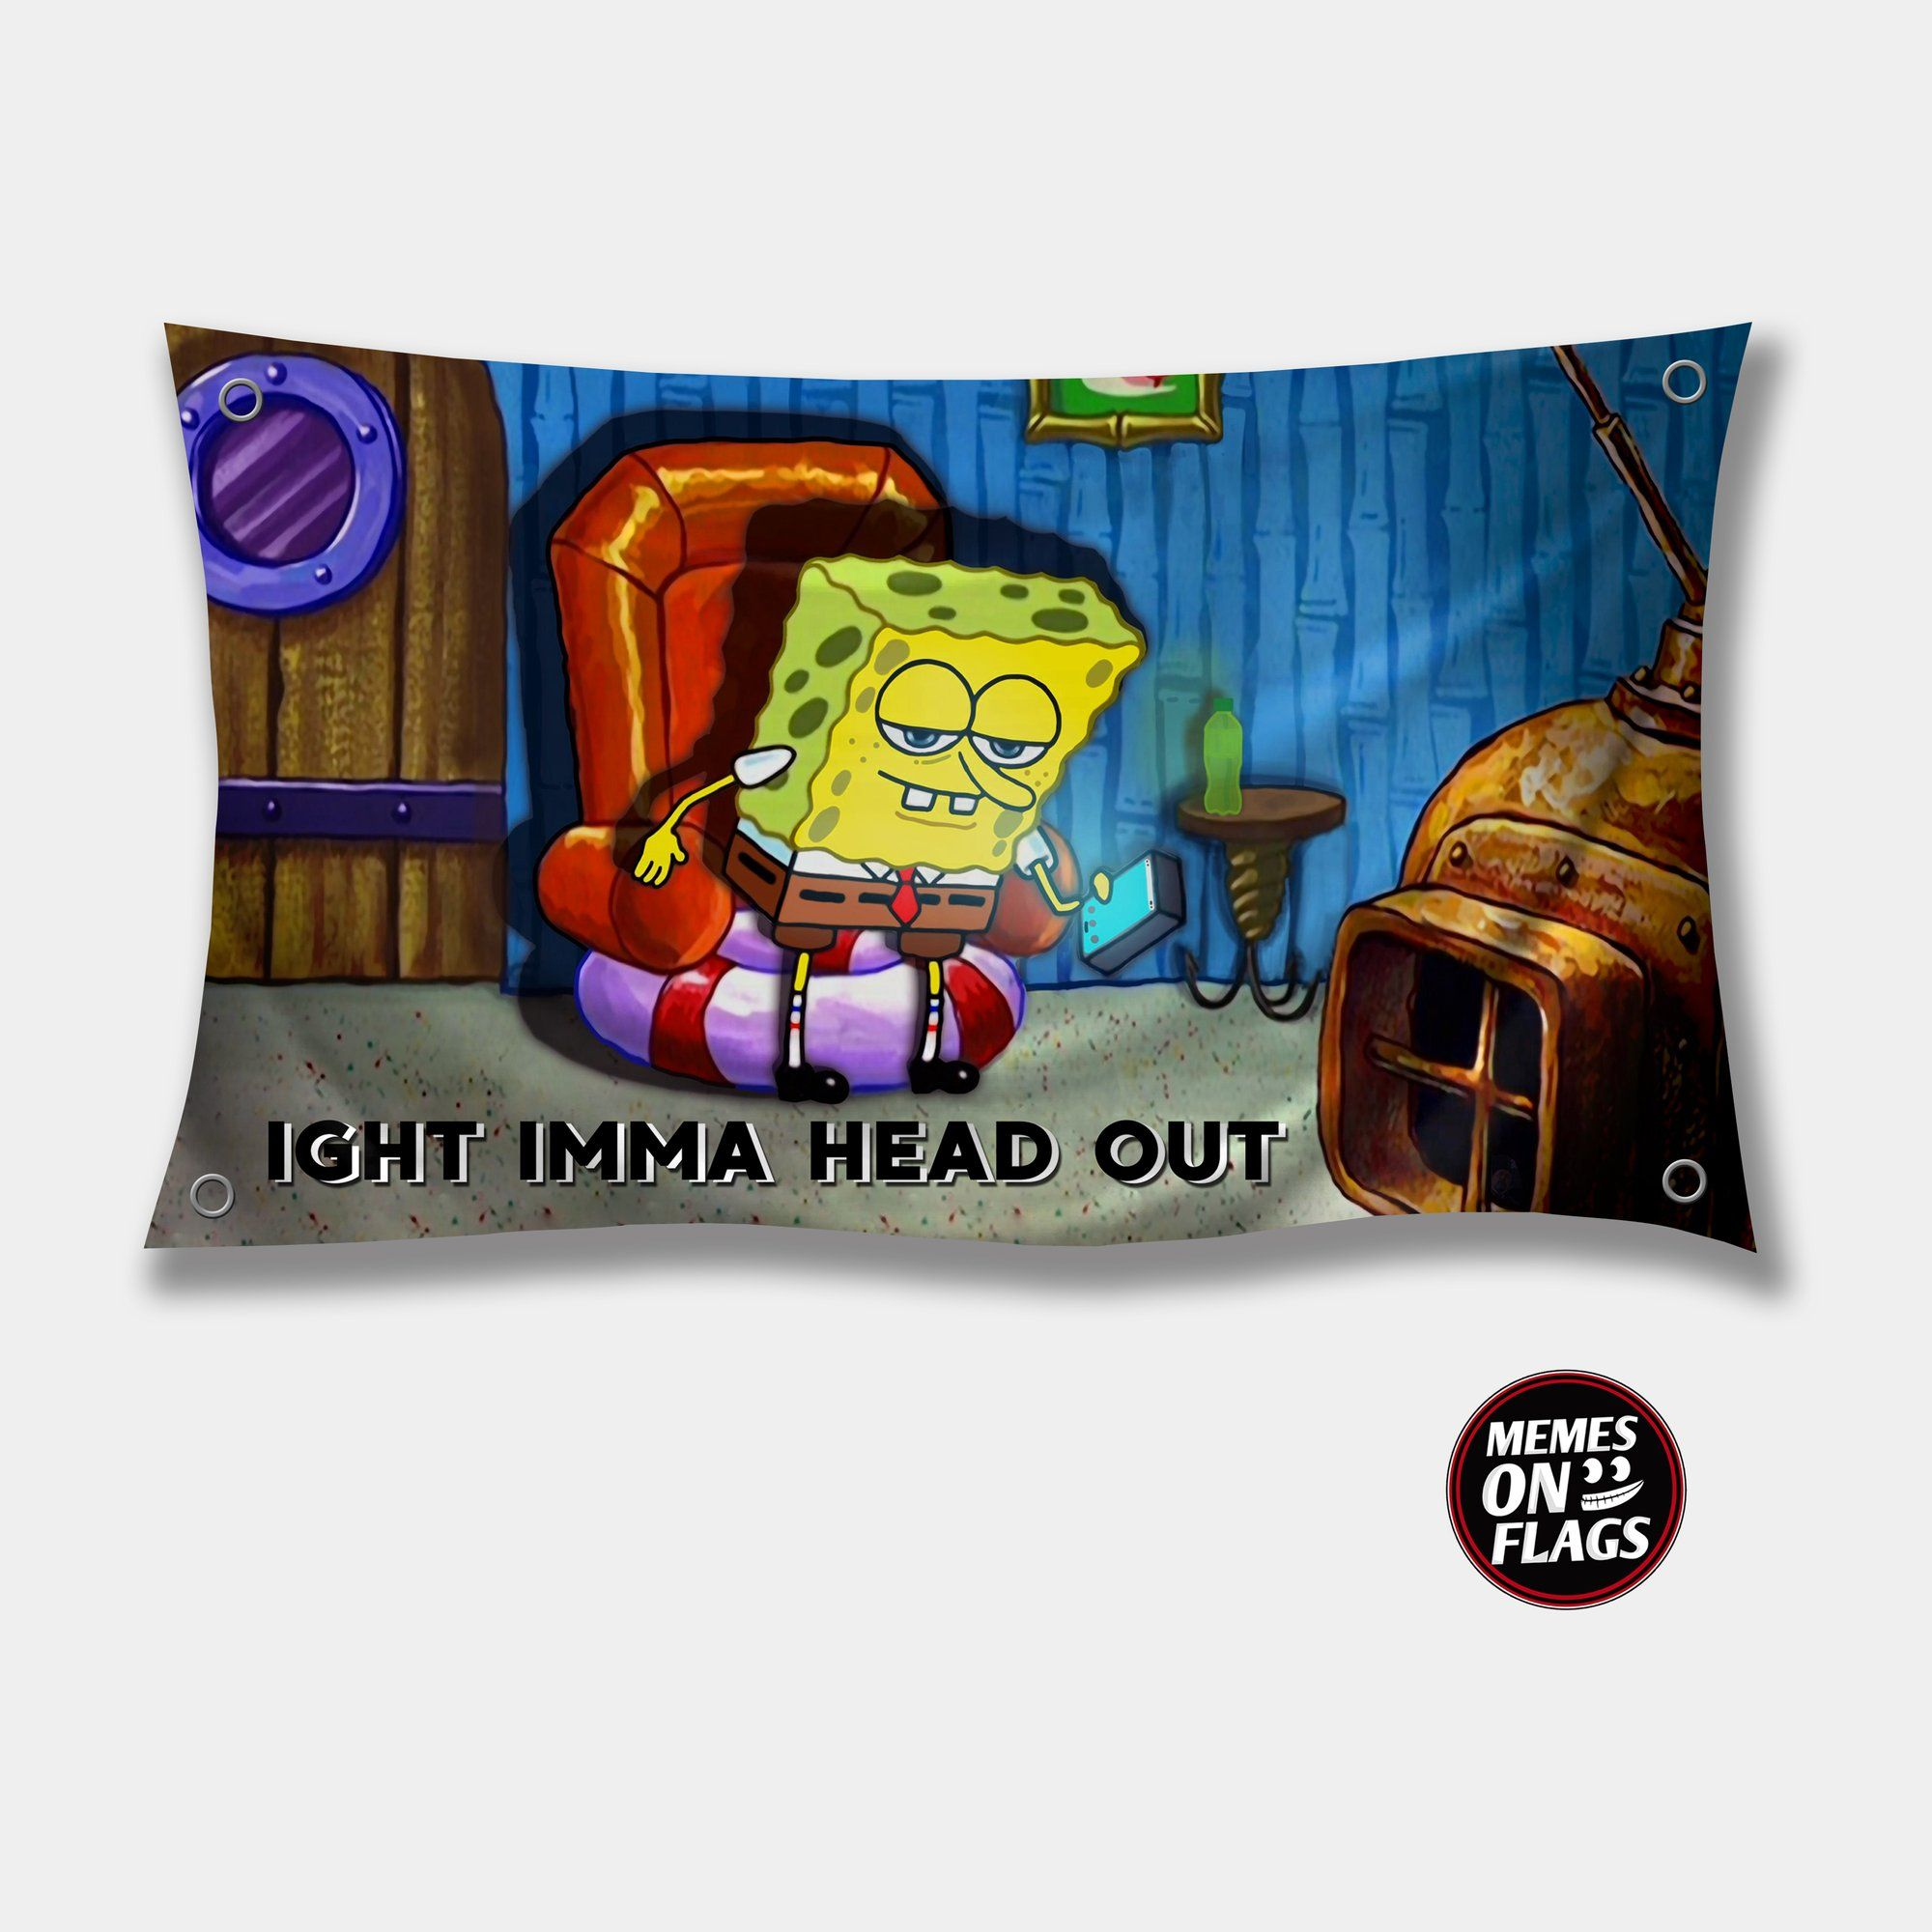 Buy 2 Flags Get 1 Free Memes On Flags In 2020 Flag Homer Simpson Quotes Wolf Of Wall Street